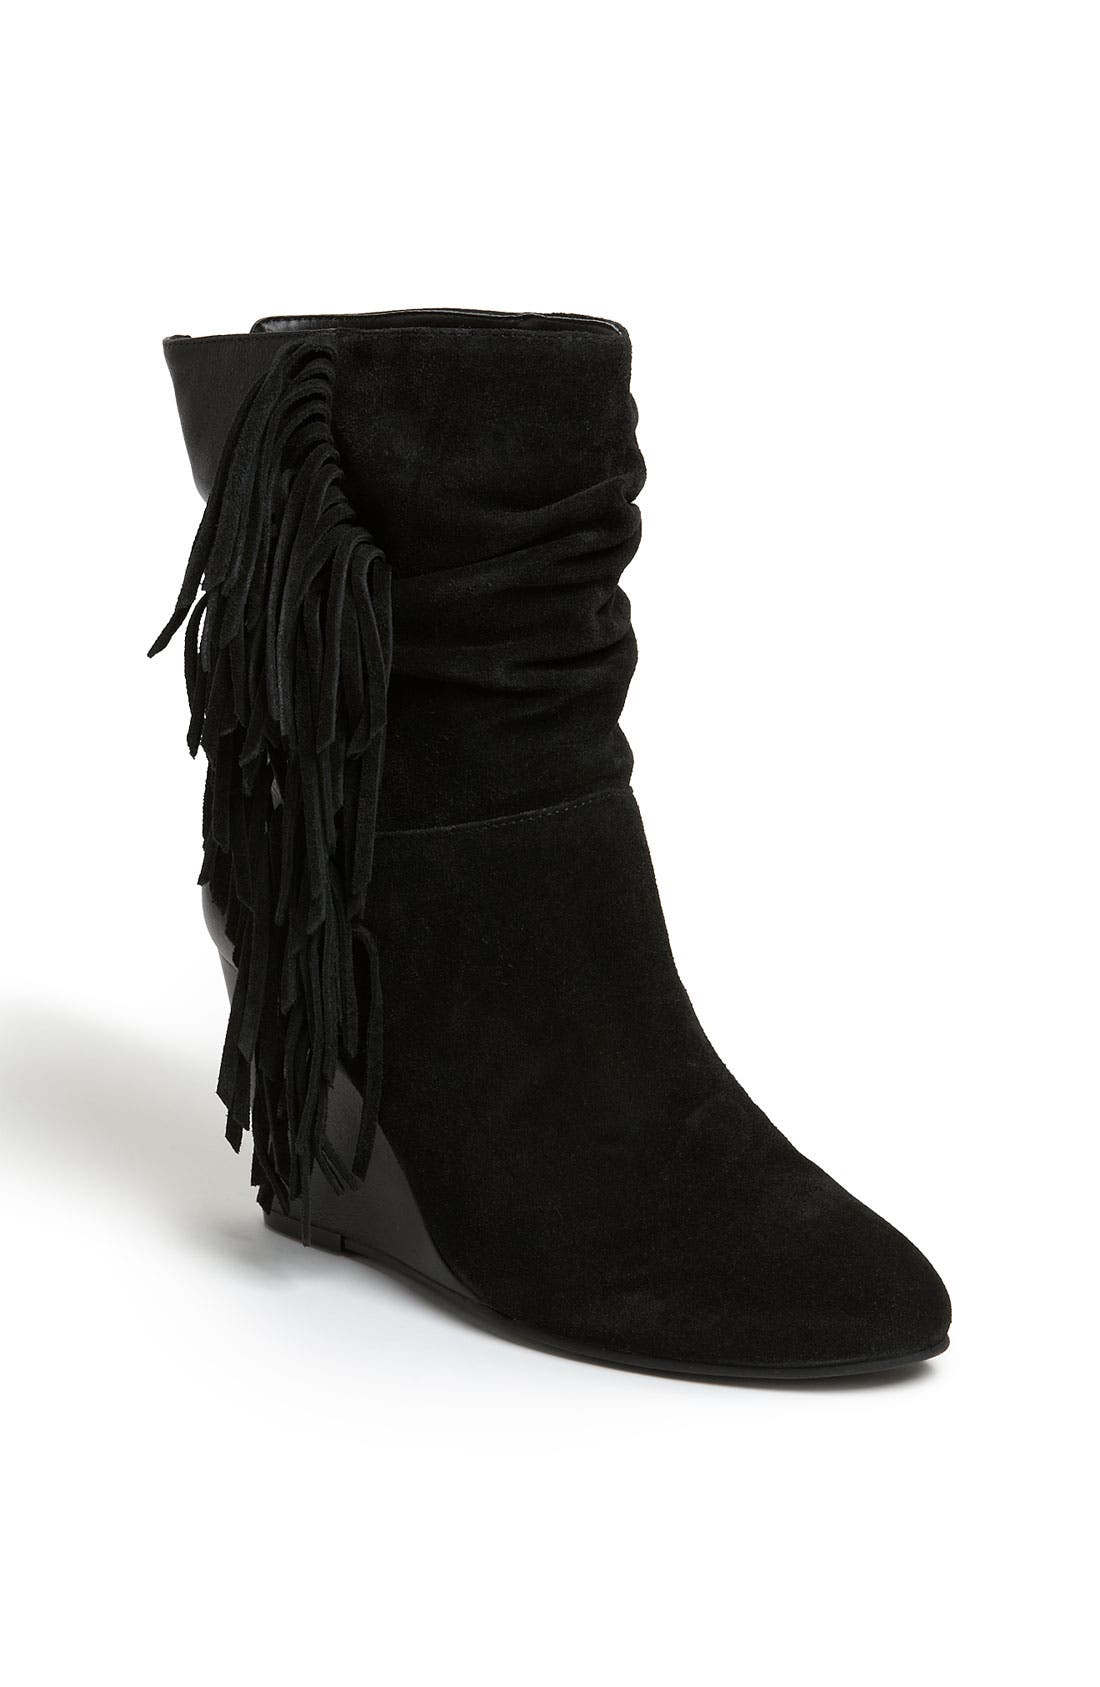 Alternate Image 1 Selected - Steven by Steve Madden 'Mohavee' Boot